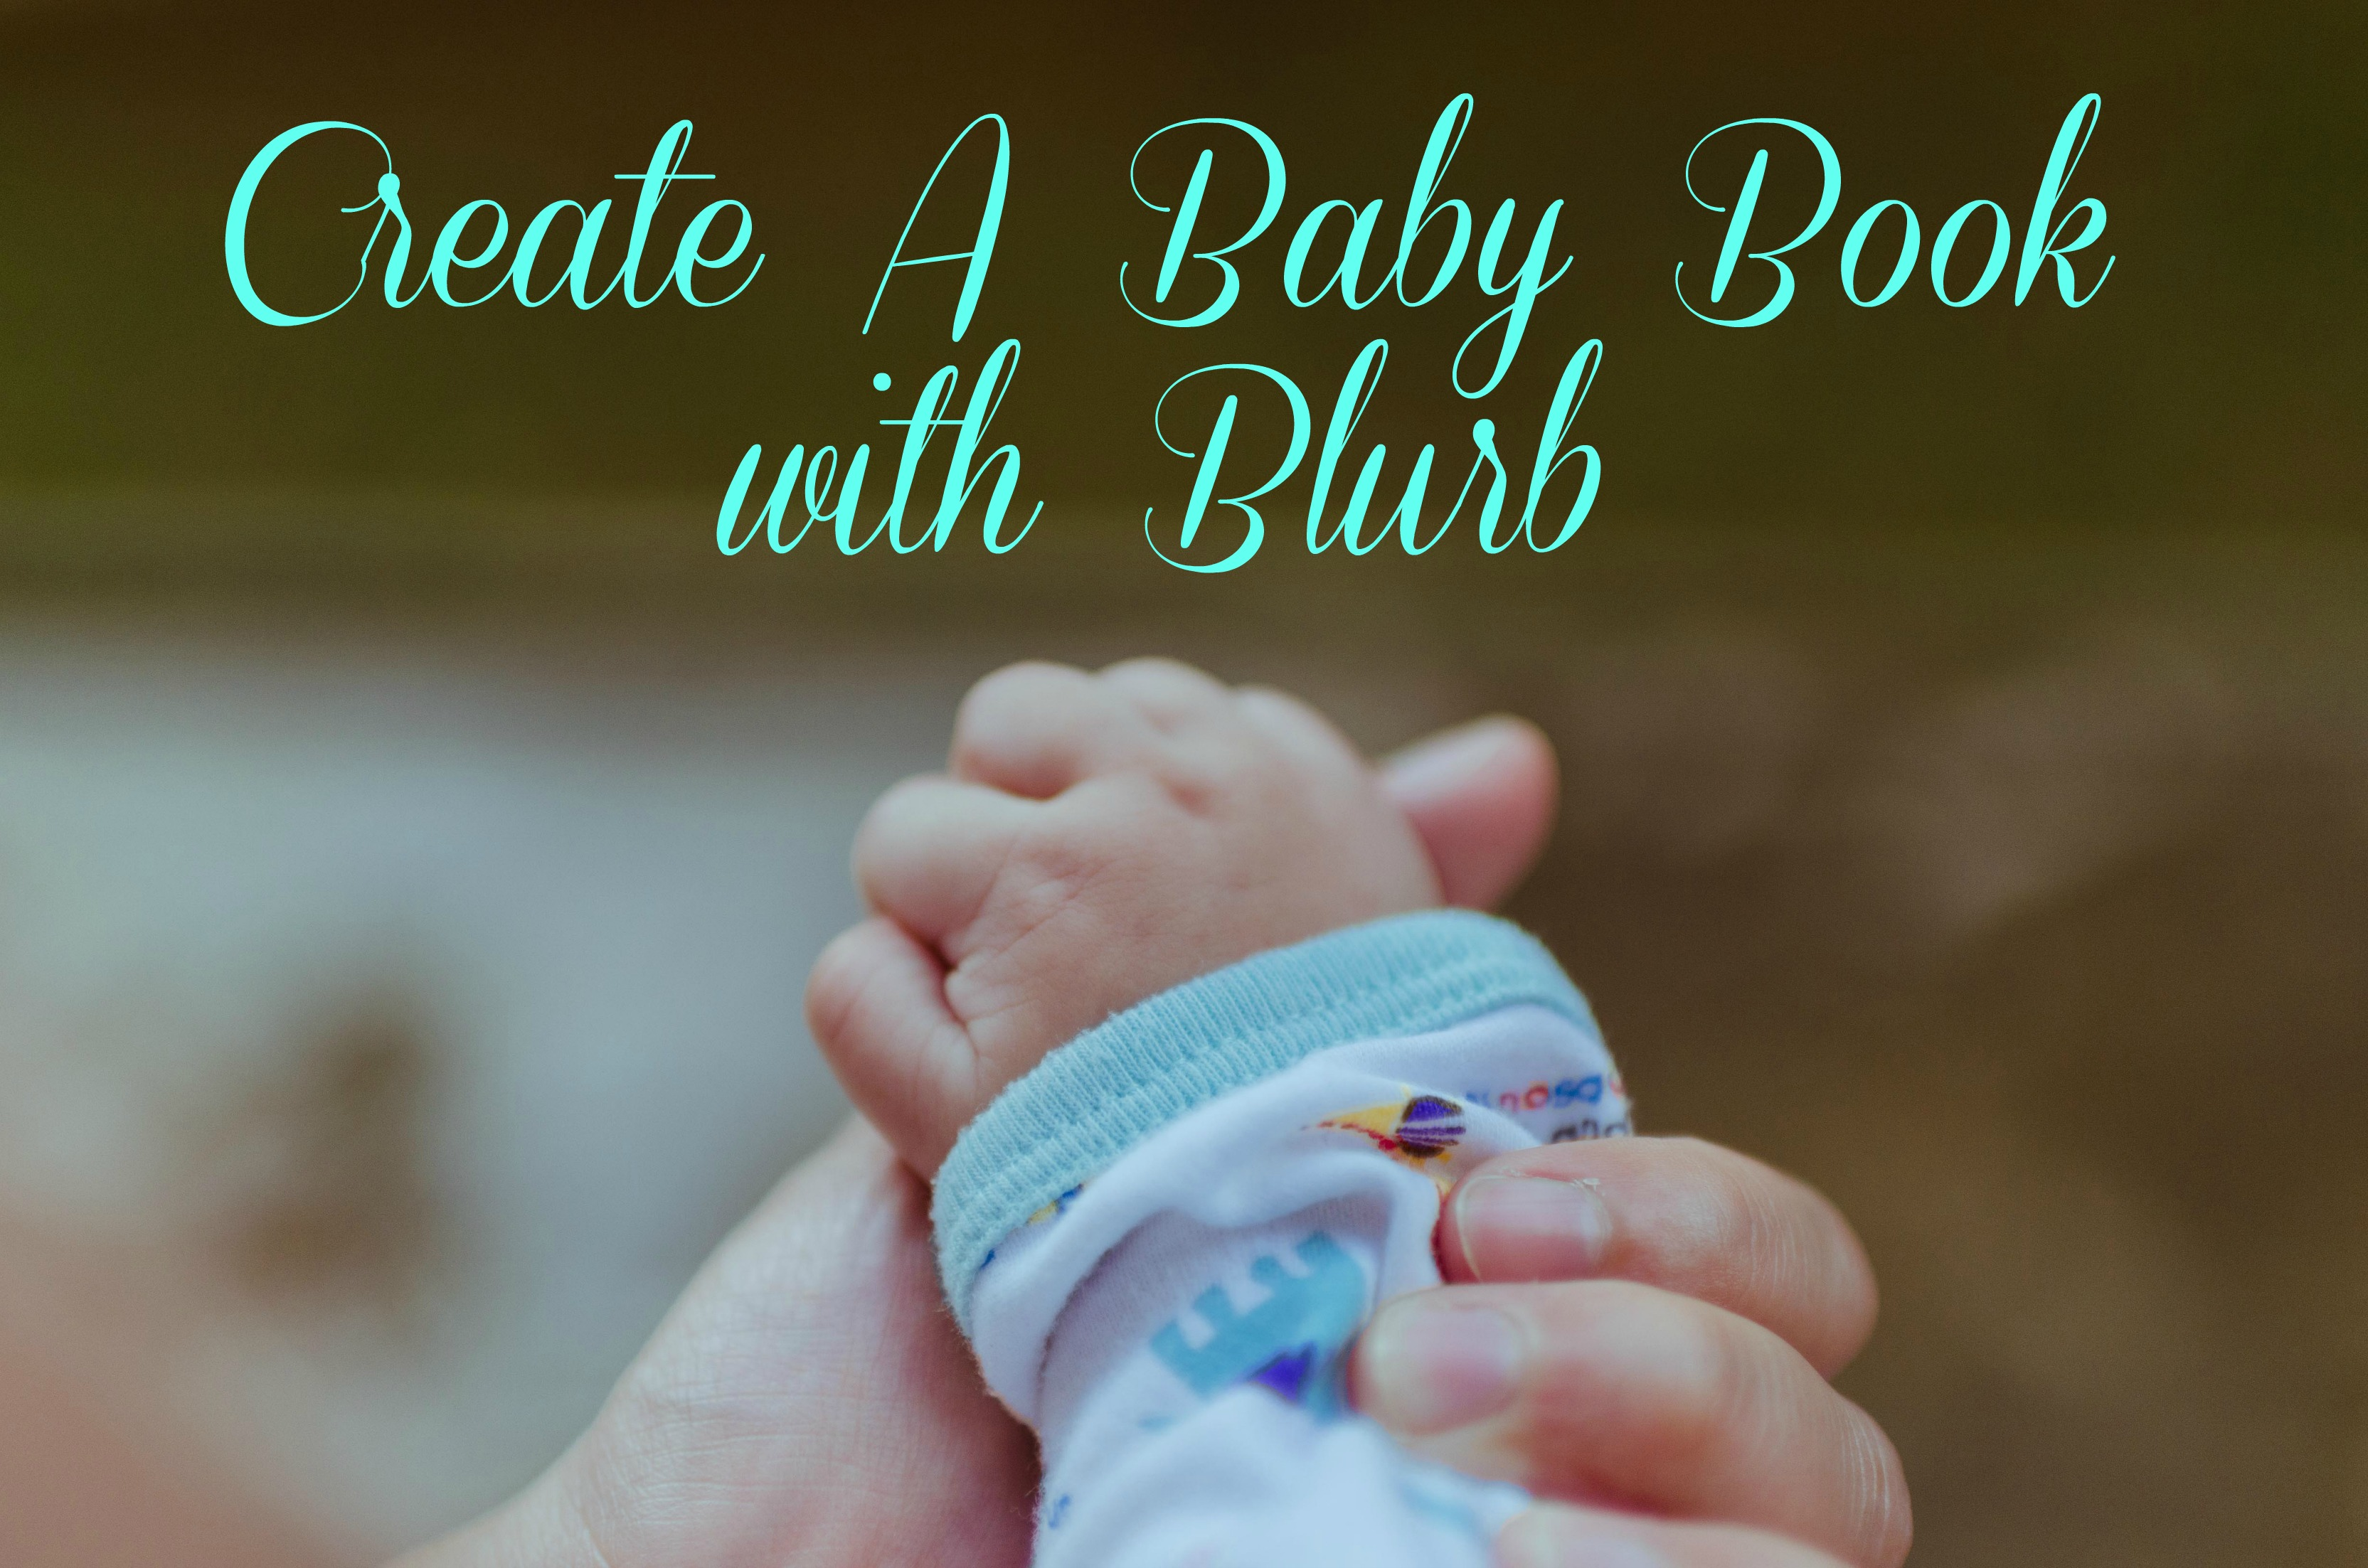 Looking To Capture Your Baby S 2017 Milestones How About Making A Photo Book With Blurb Has Pre Designed Templates That Make It Super Easy